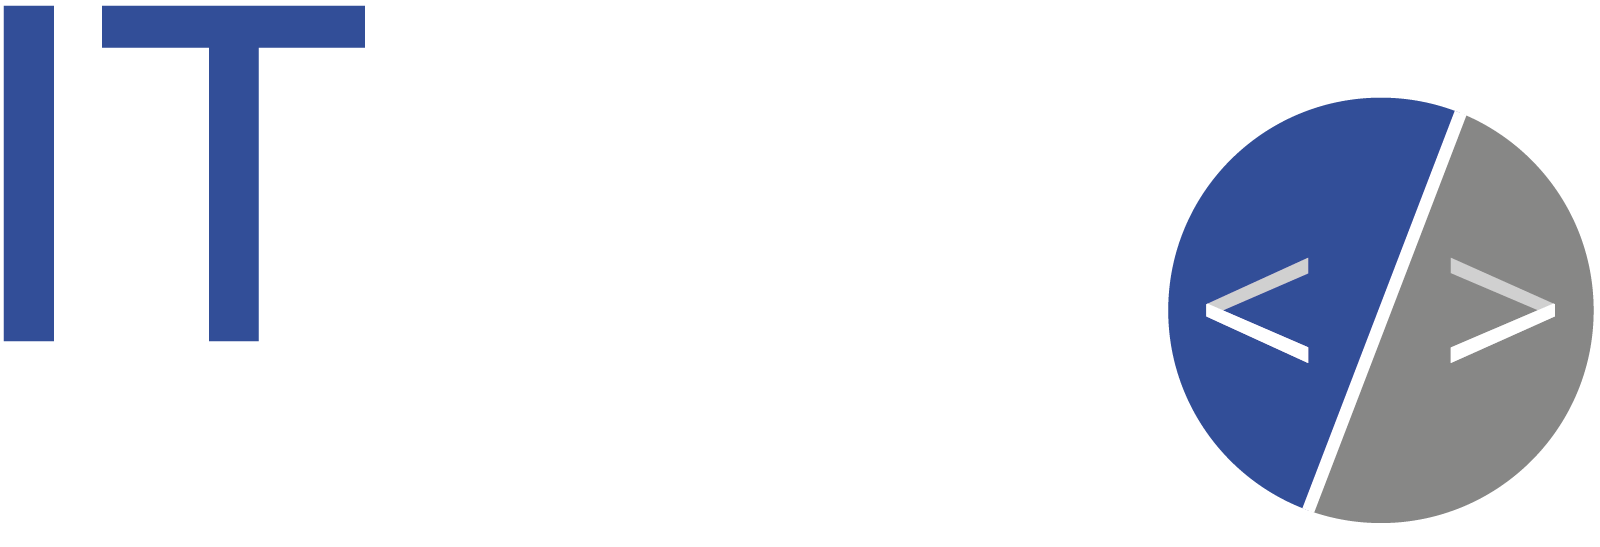 IT-Haar logo